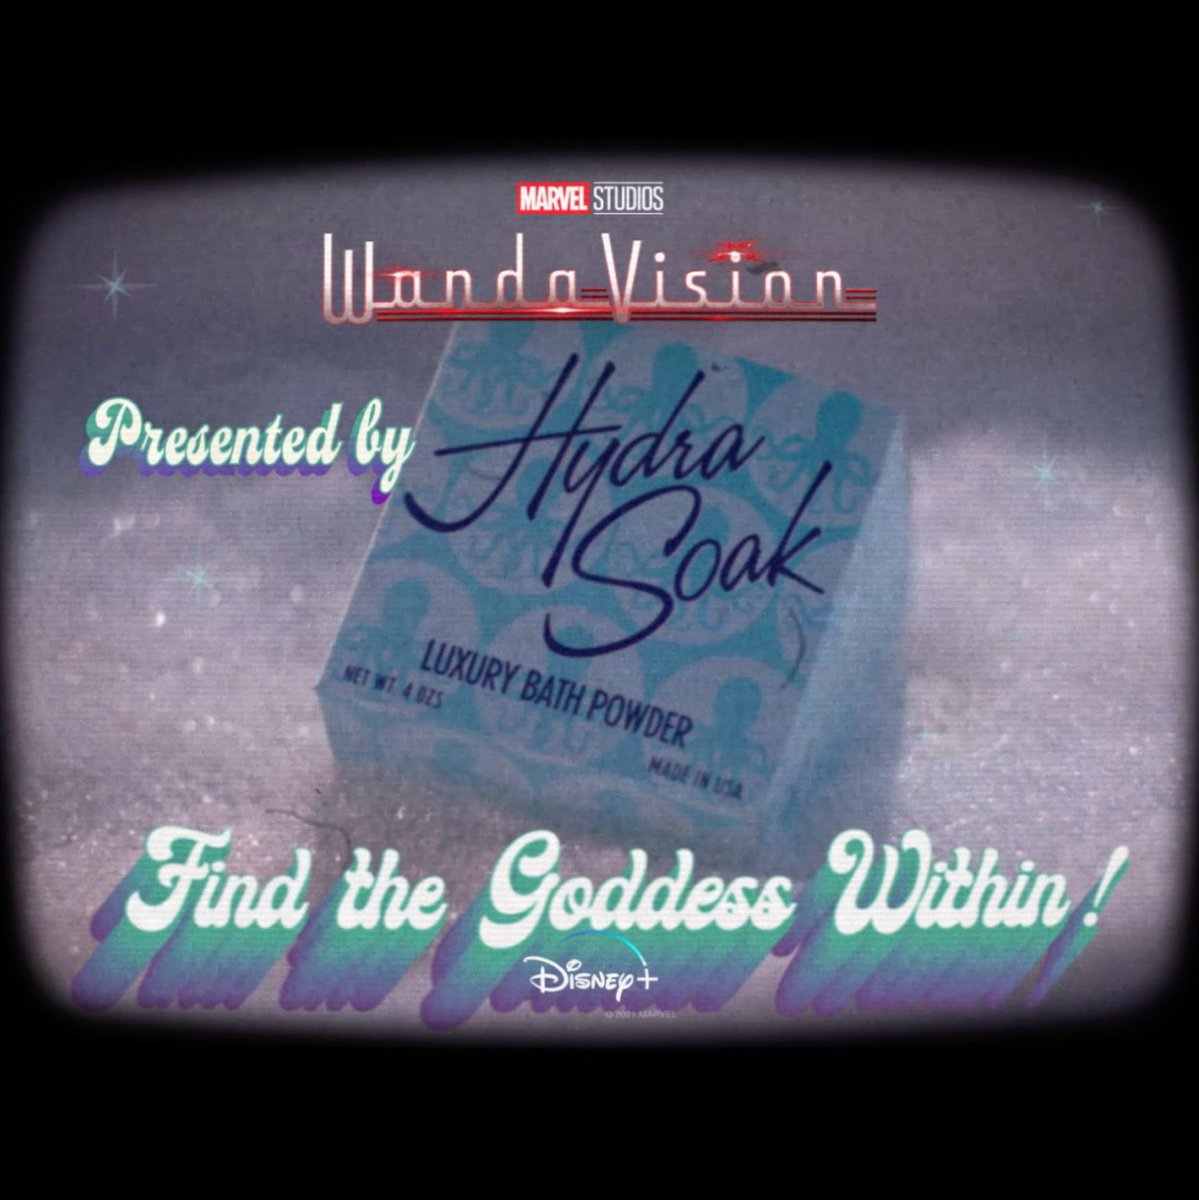 """WandaVision"" is brought to you in color by Hydra Soak. Find the Goddess within!  Marvel Studios' #WandaVision is now streaming on #DisneyPlus."